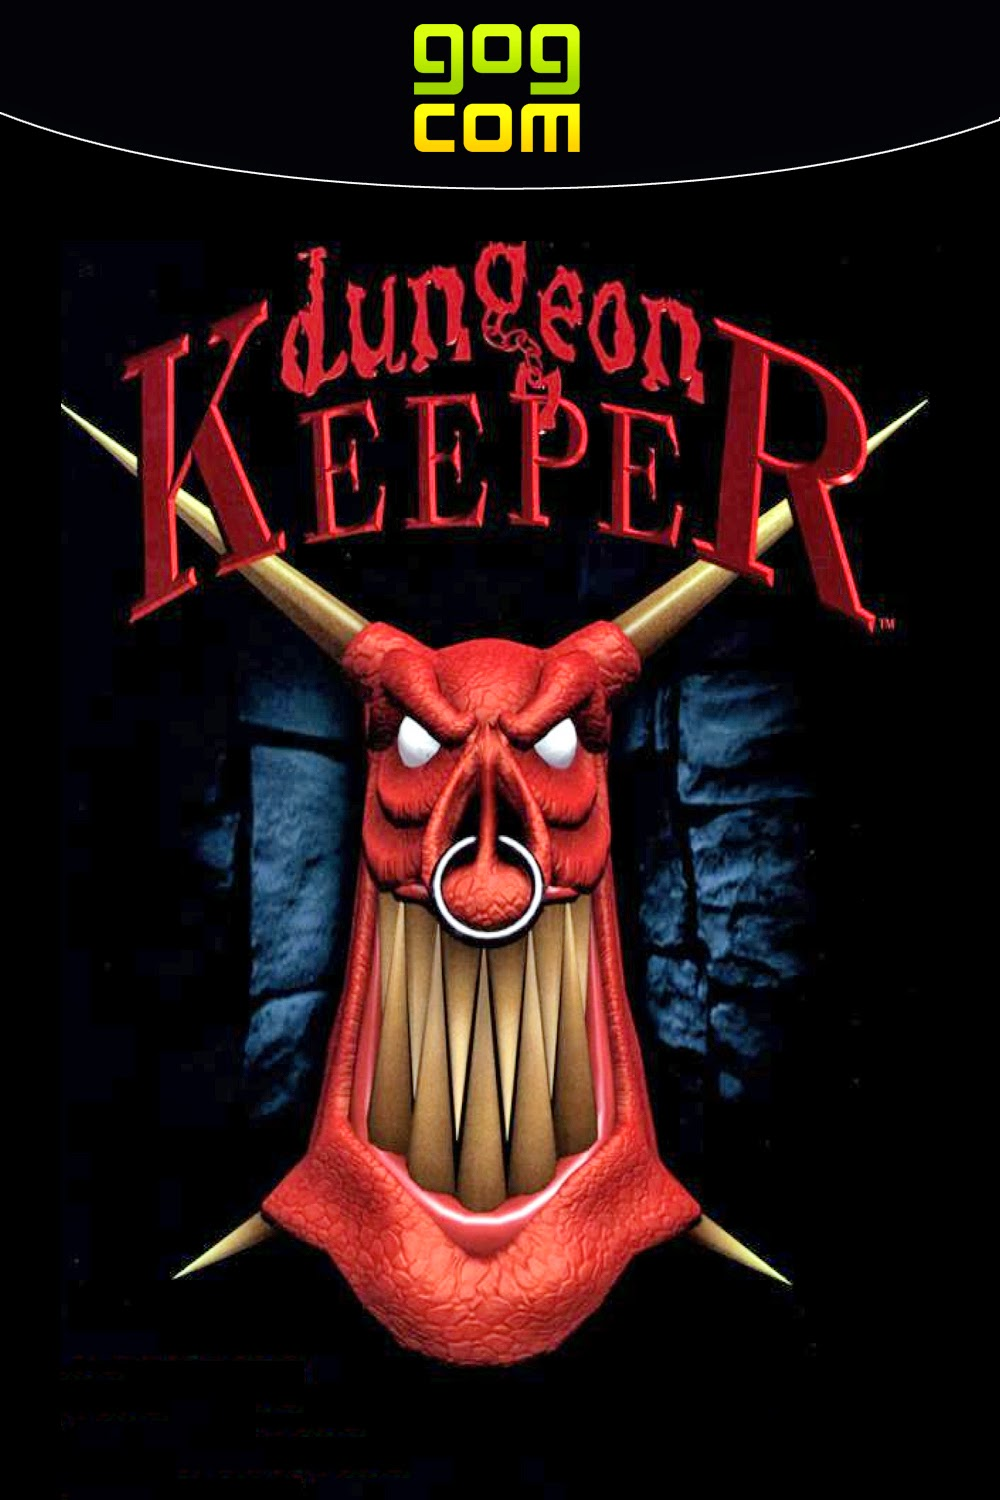 http://www.gog.com/game/dungeon_keeper